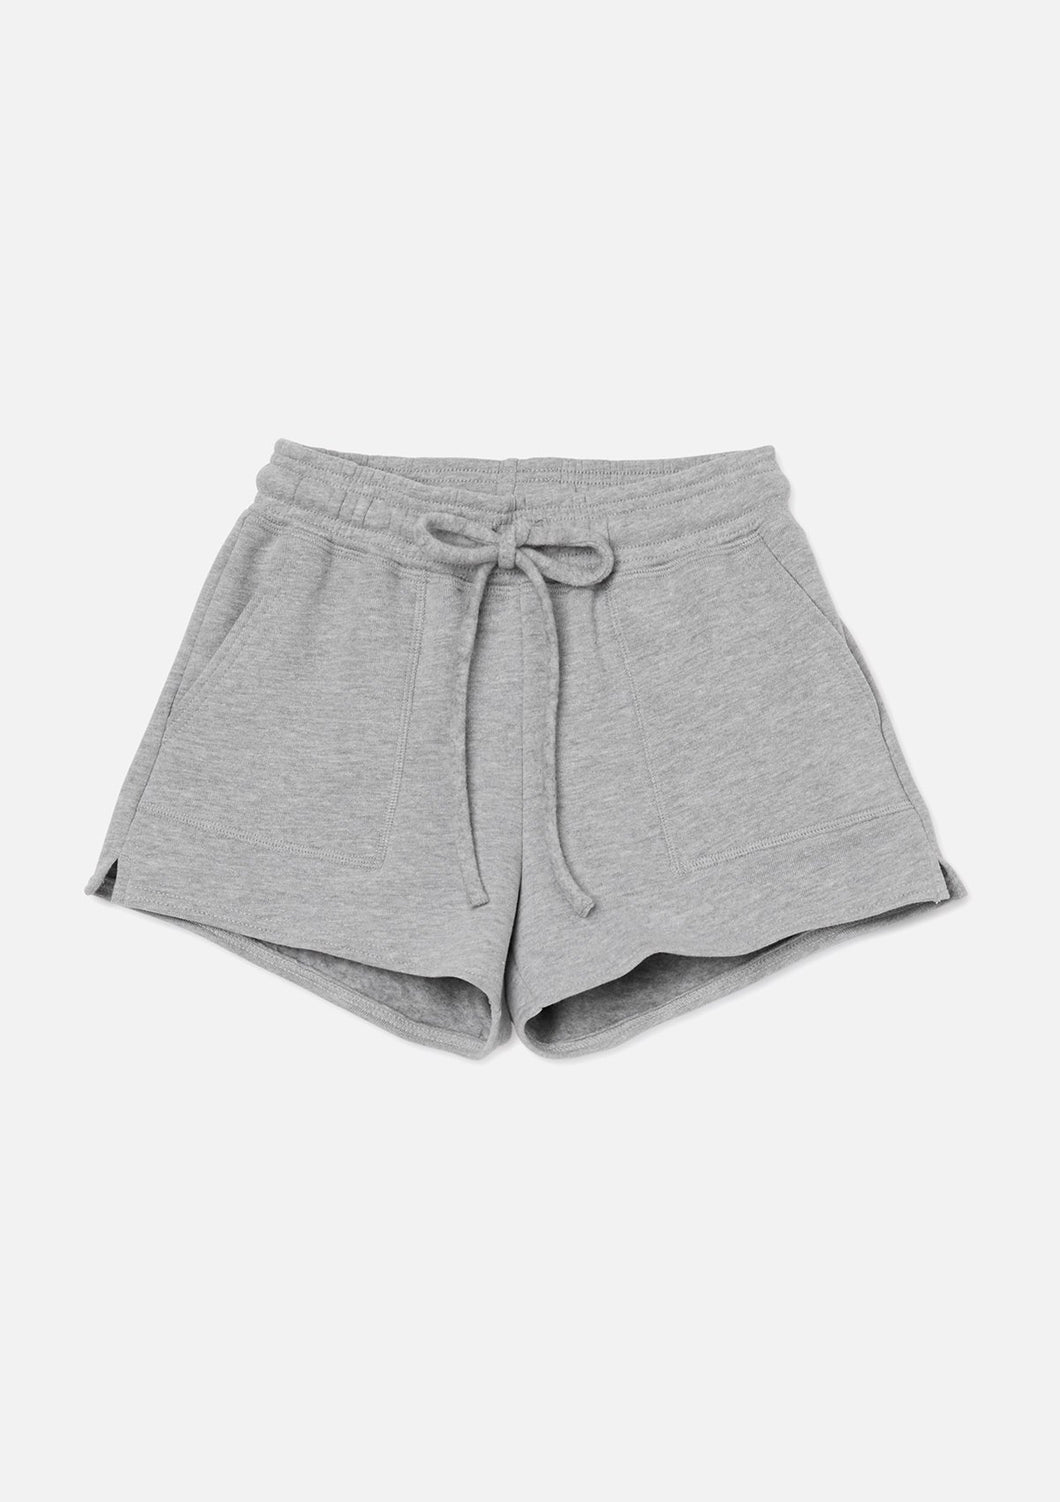 The Lounge Short